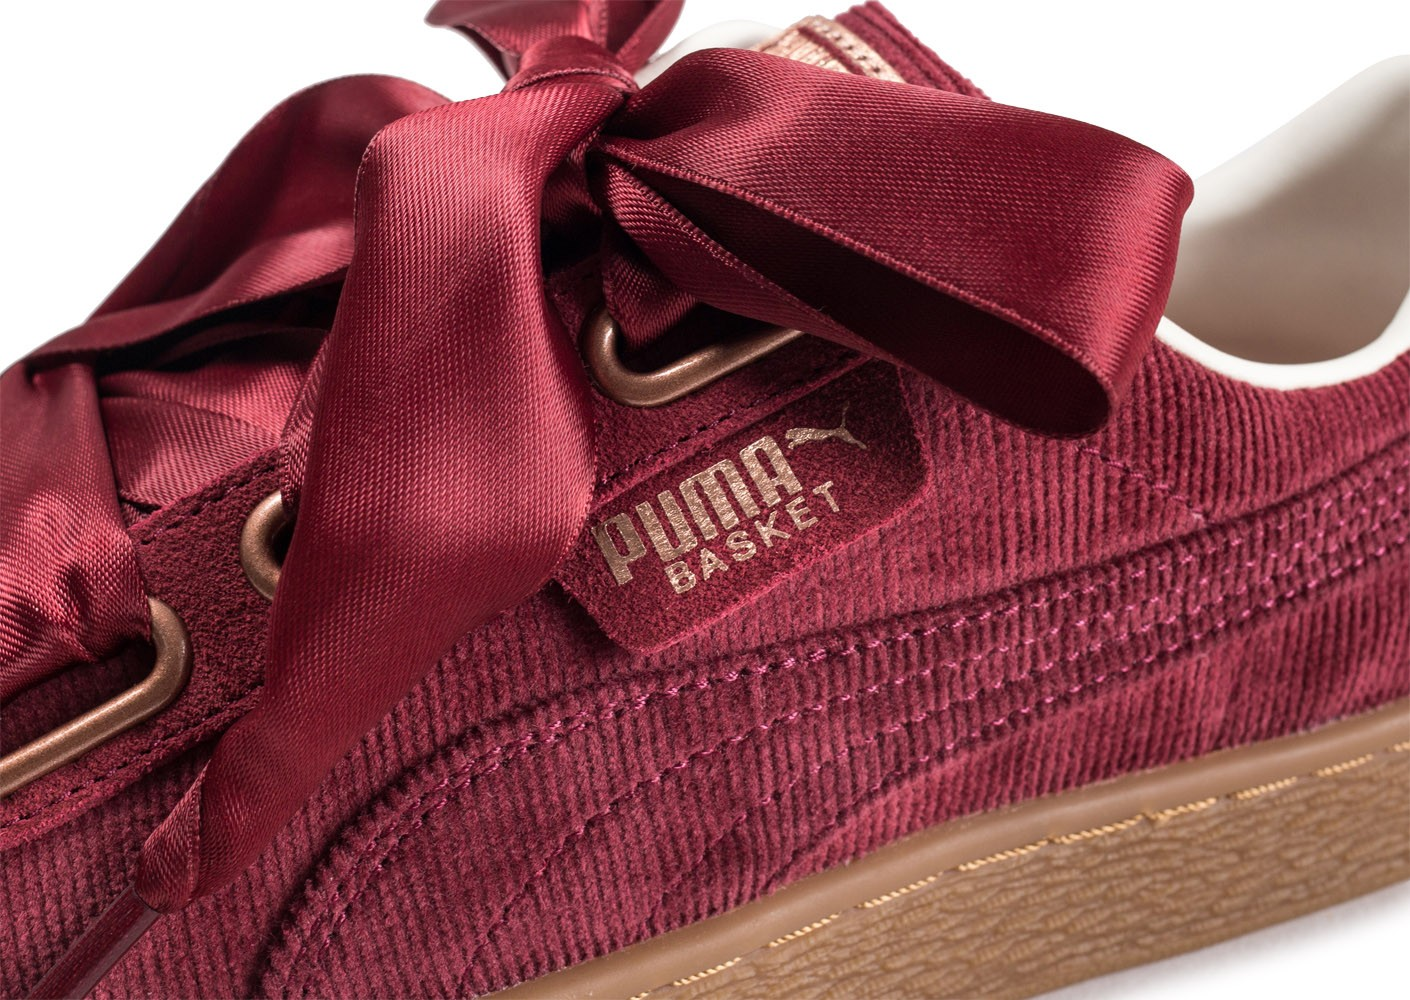 Basket Corduroy Bordeaux Heart Chaussures Black Puma Friday Femme wOPn4B